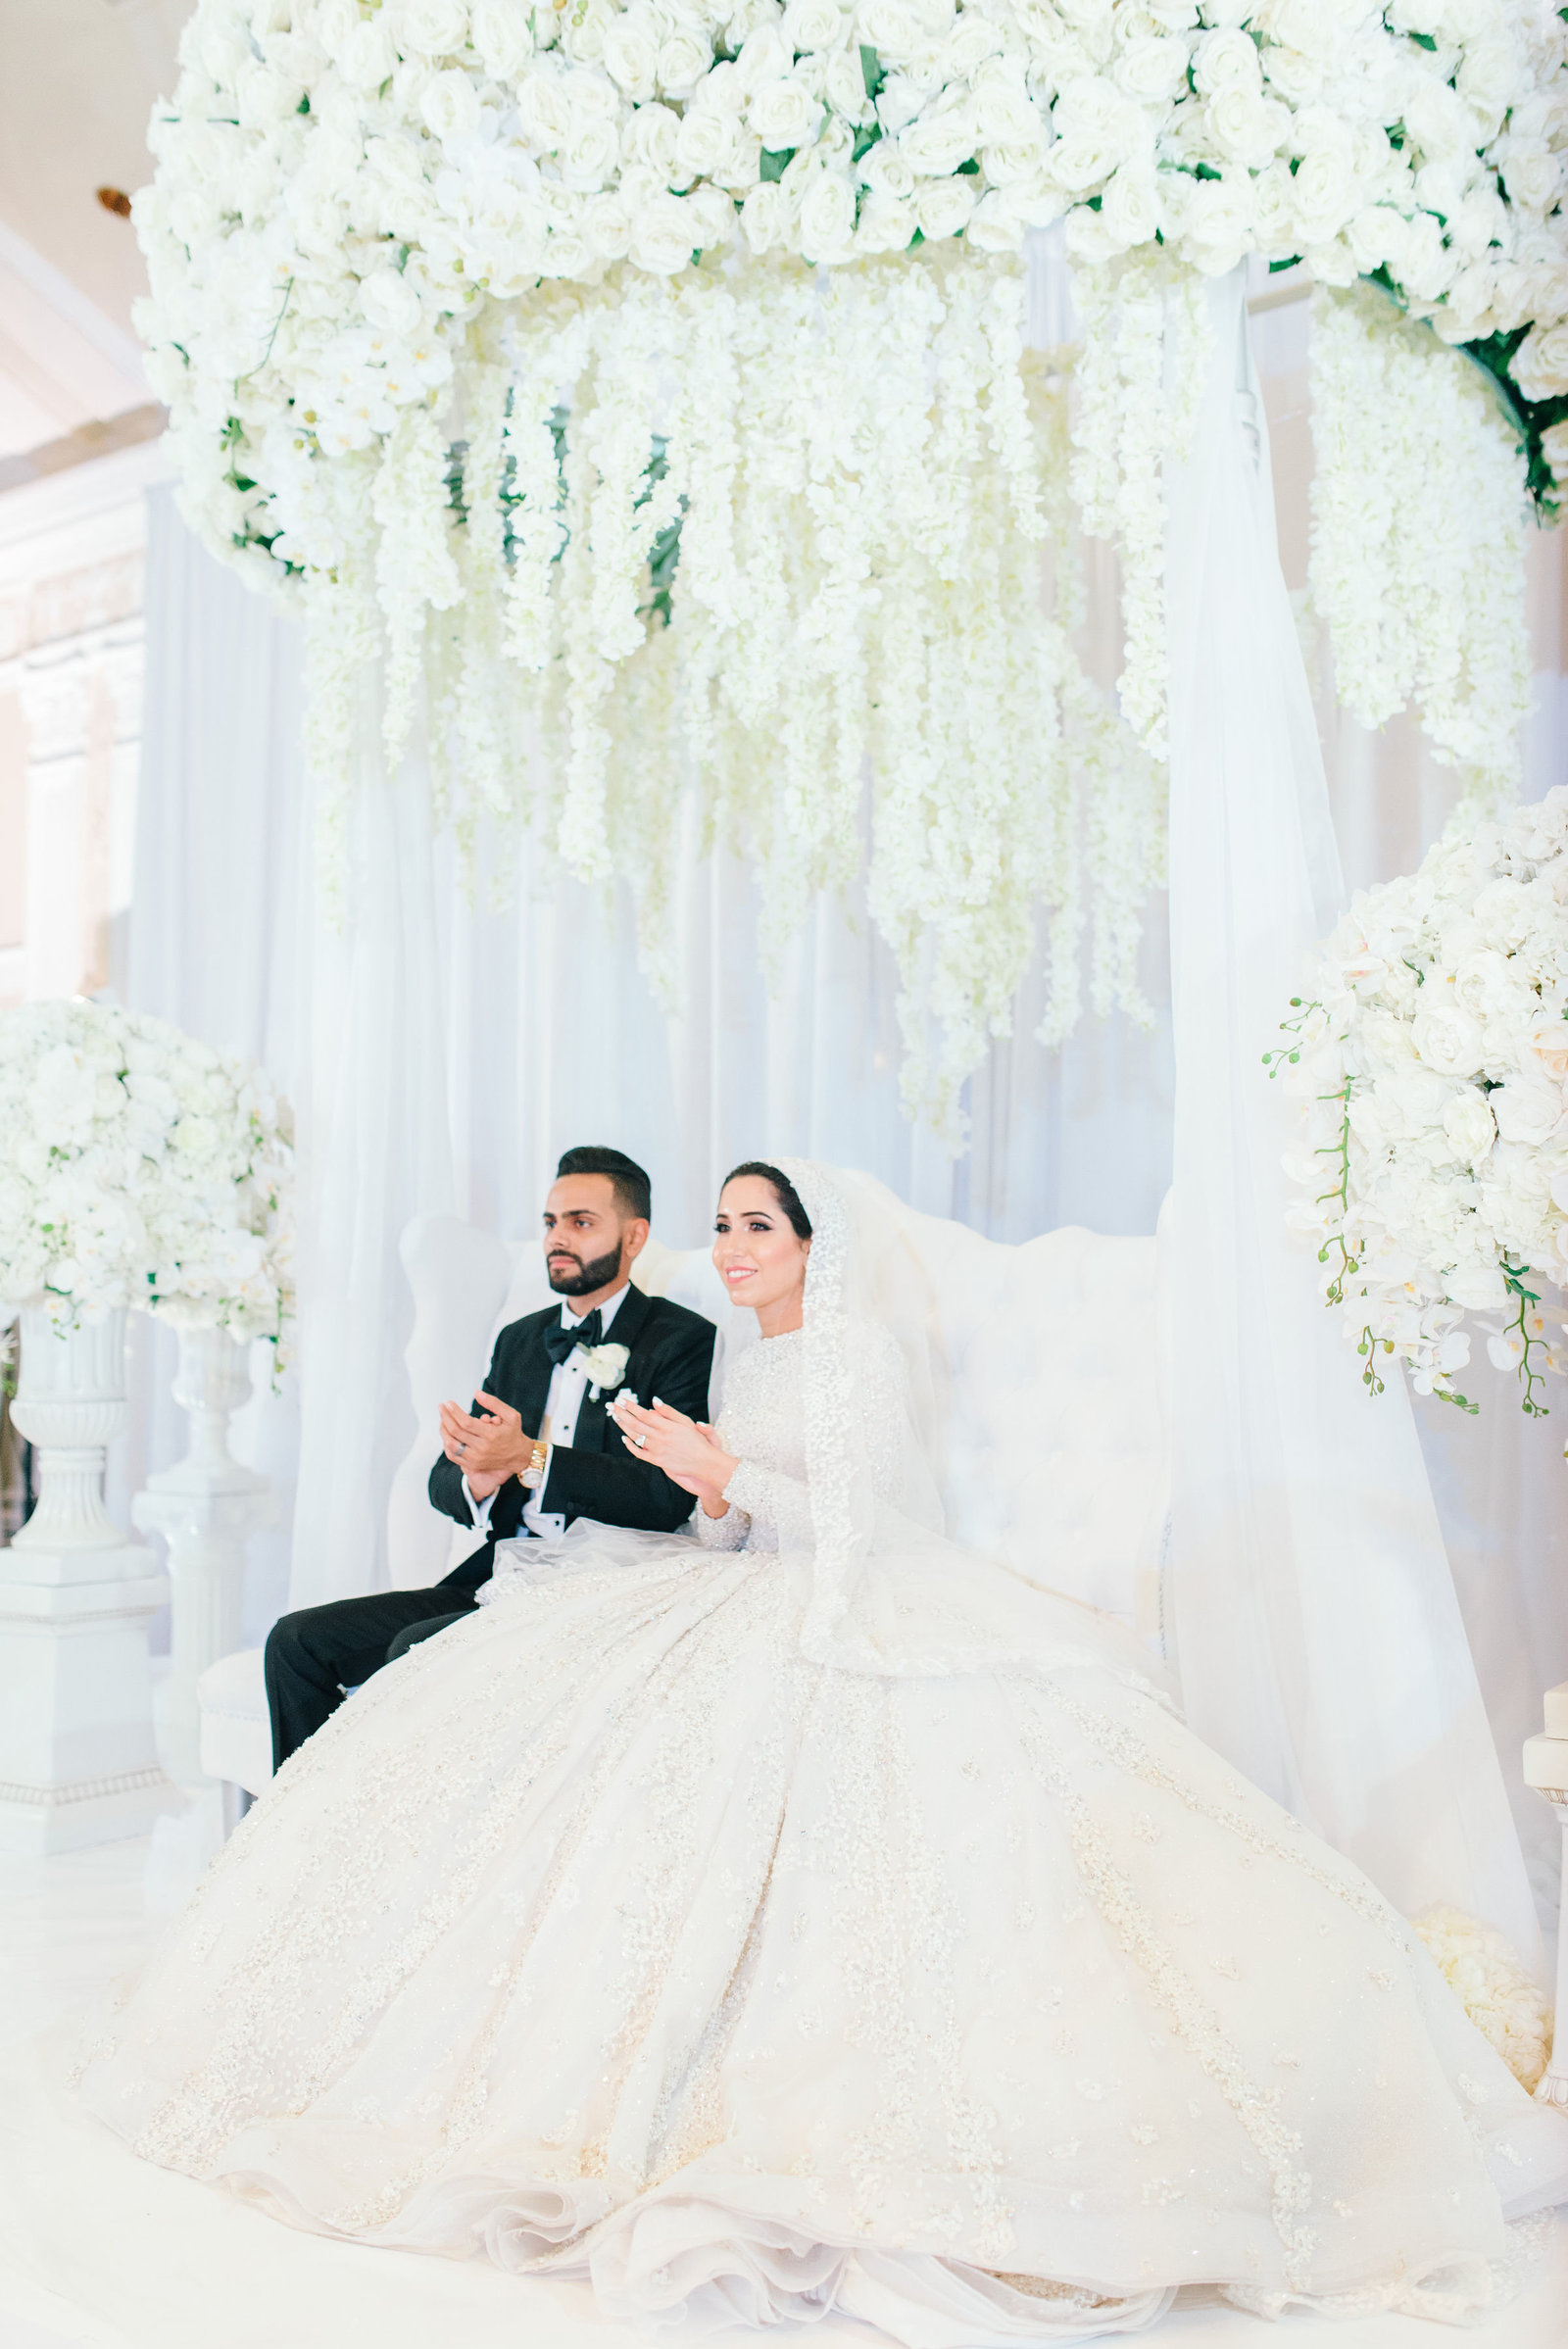 LTP_812Noor & Ahmad Vinoy Renaissance Wedding in St. Petersburg by Ledia Tashi Photography6